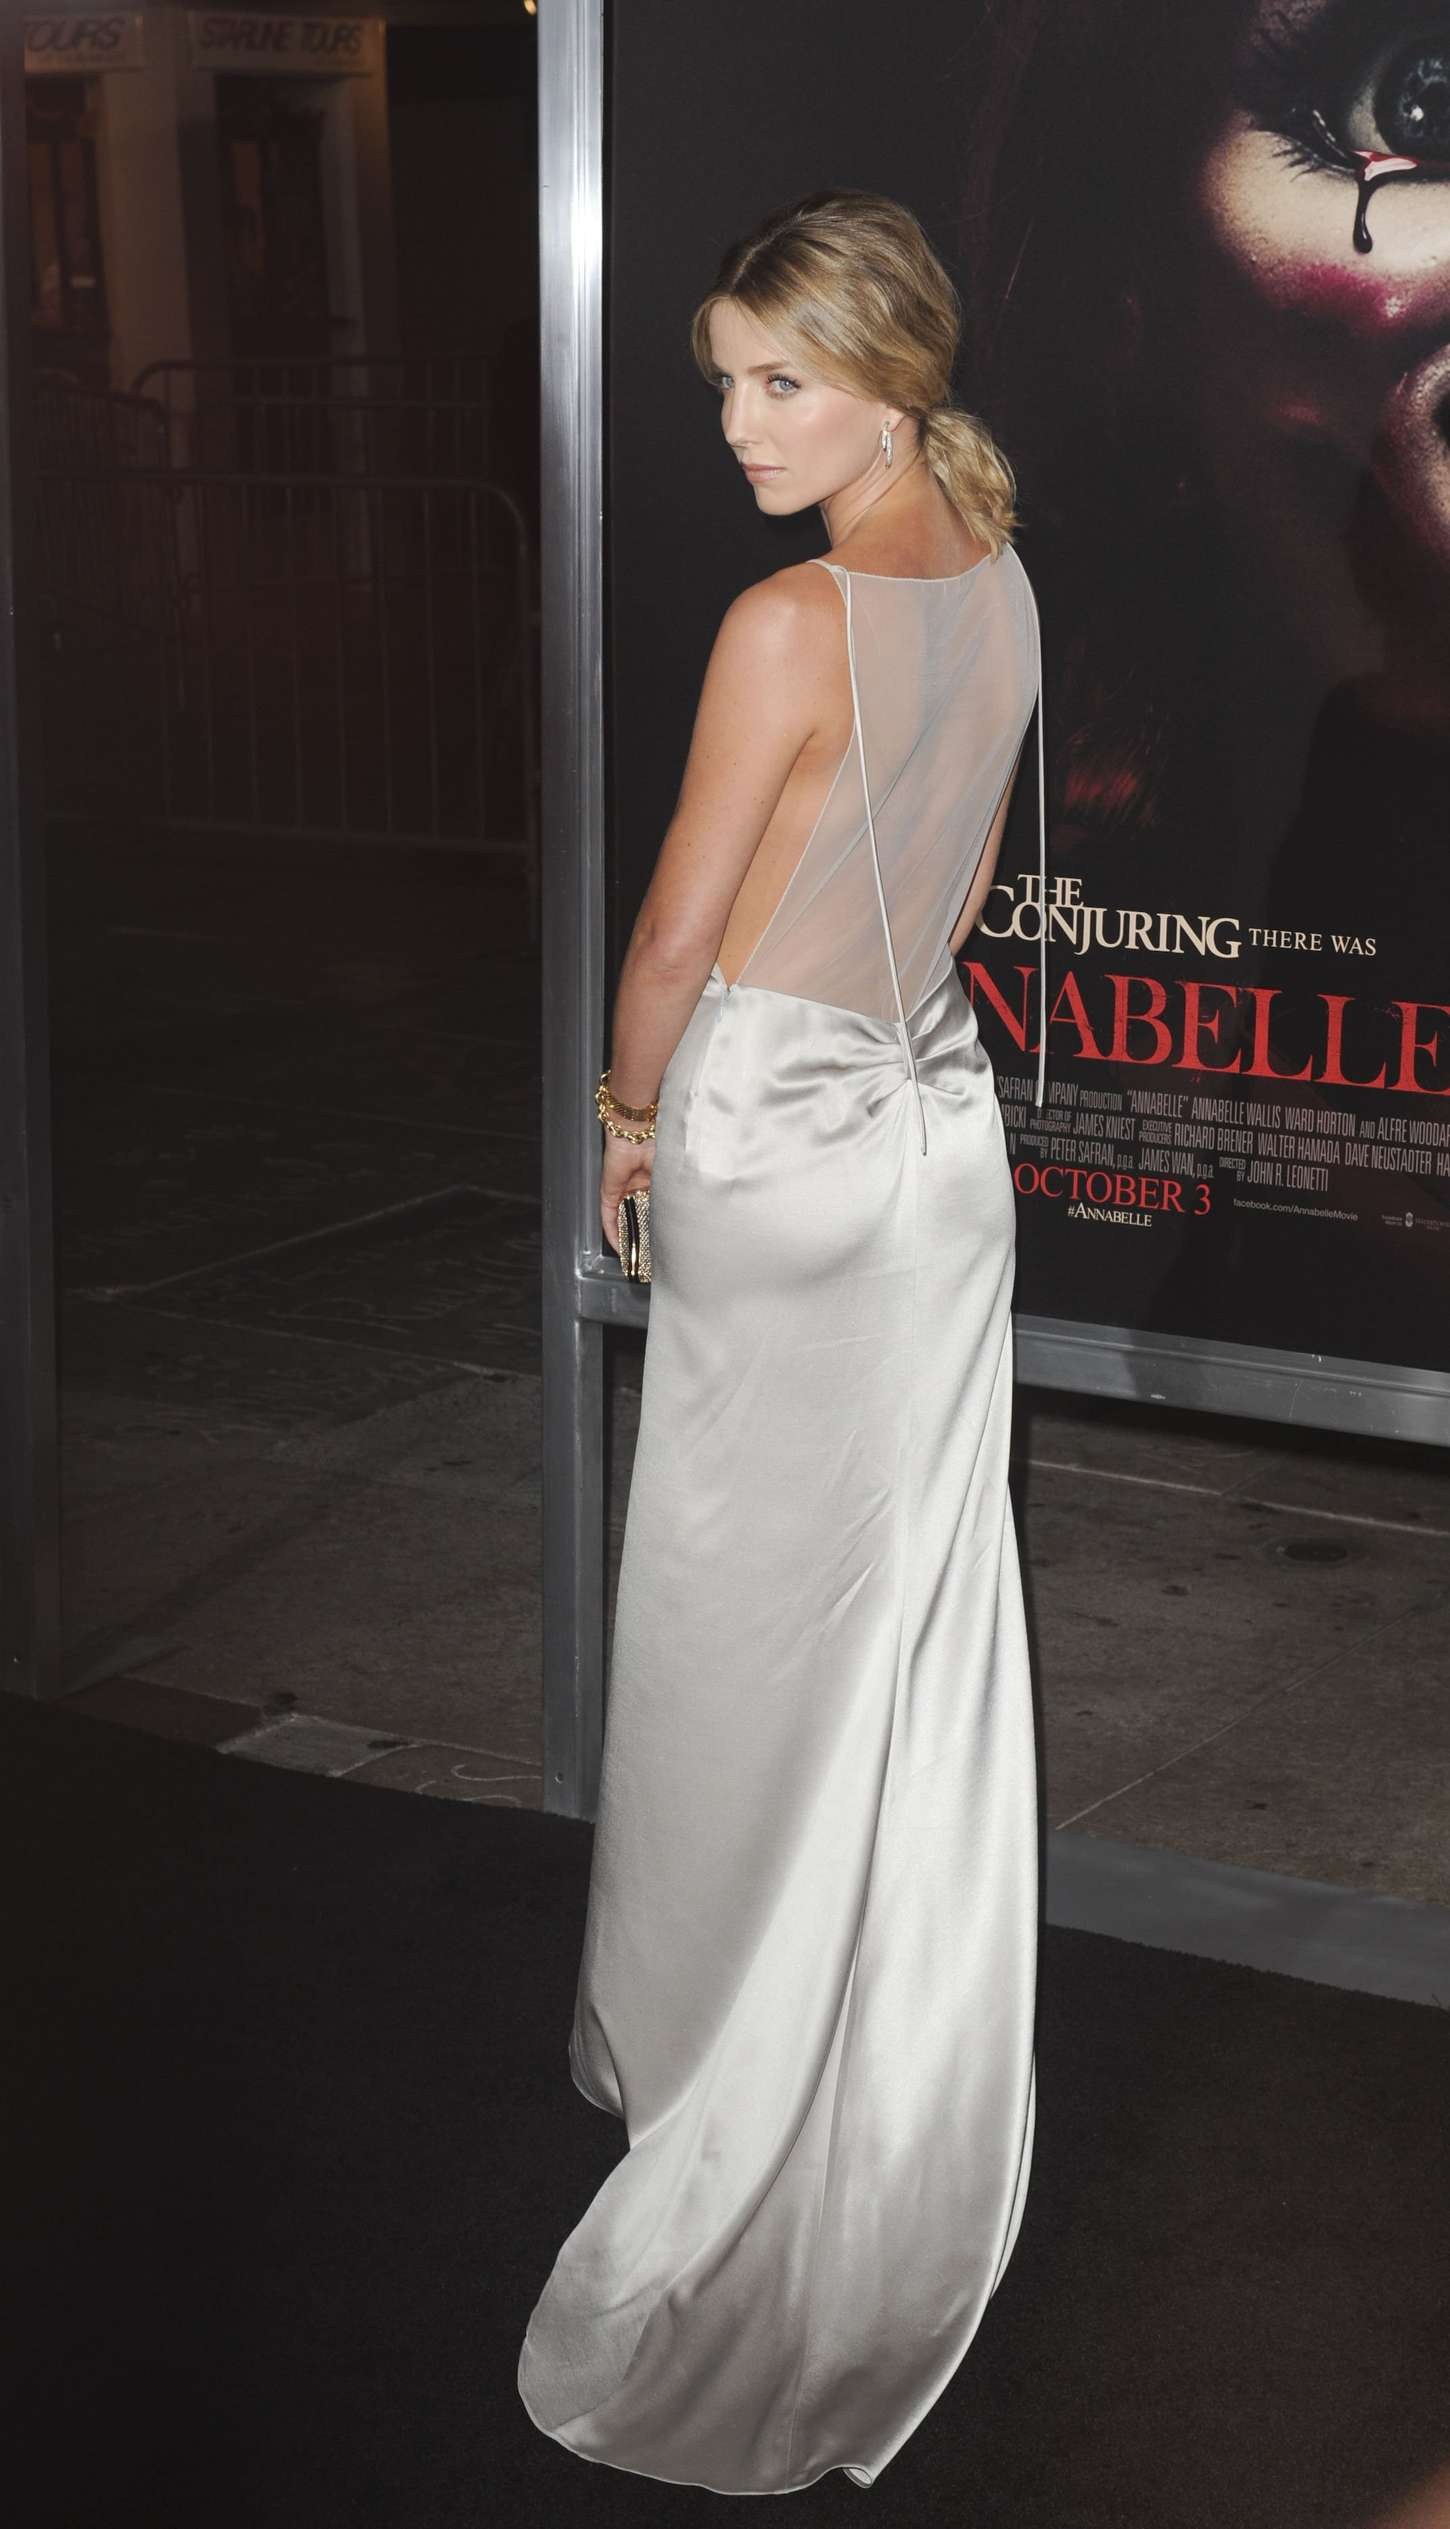 Annabelle Wallis at Annabelle Screening in Hollywood